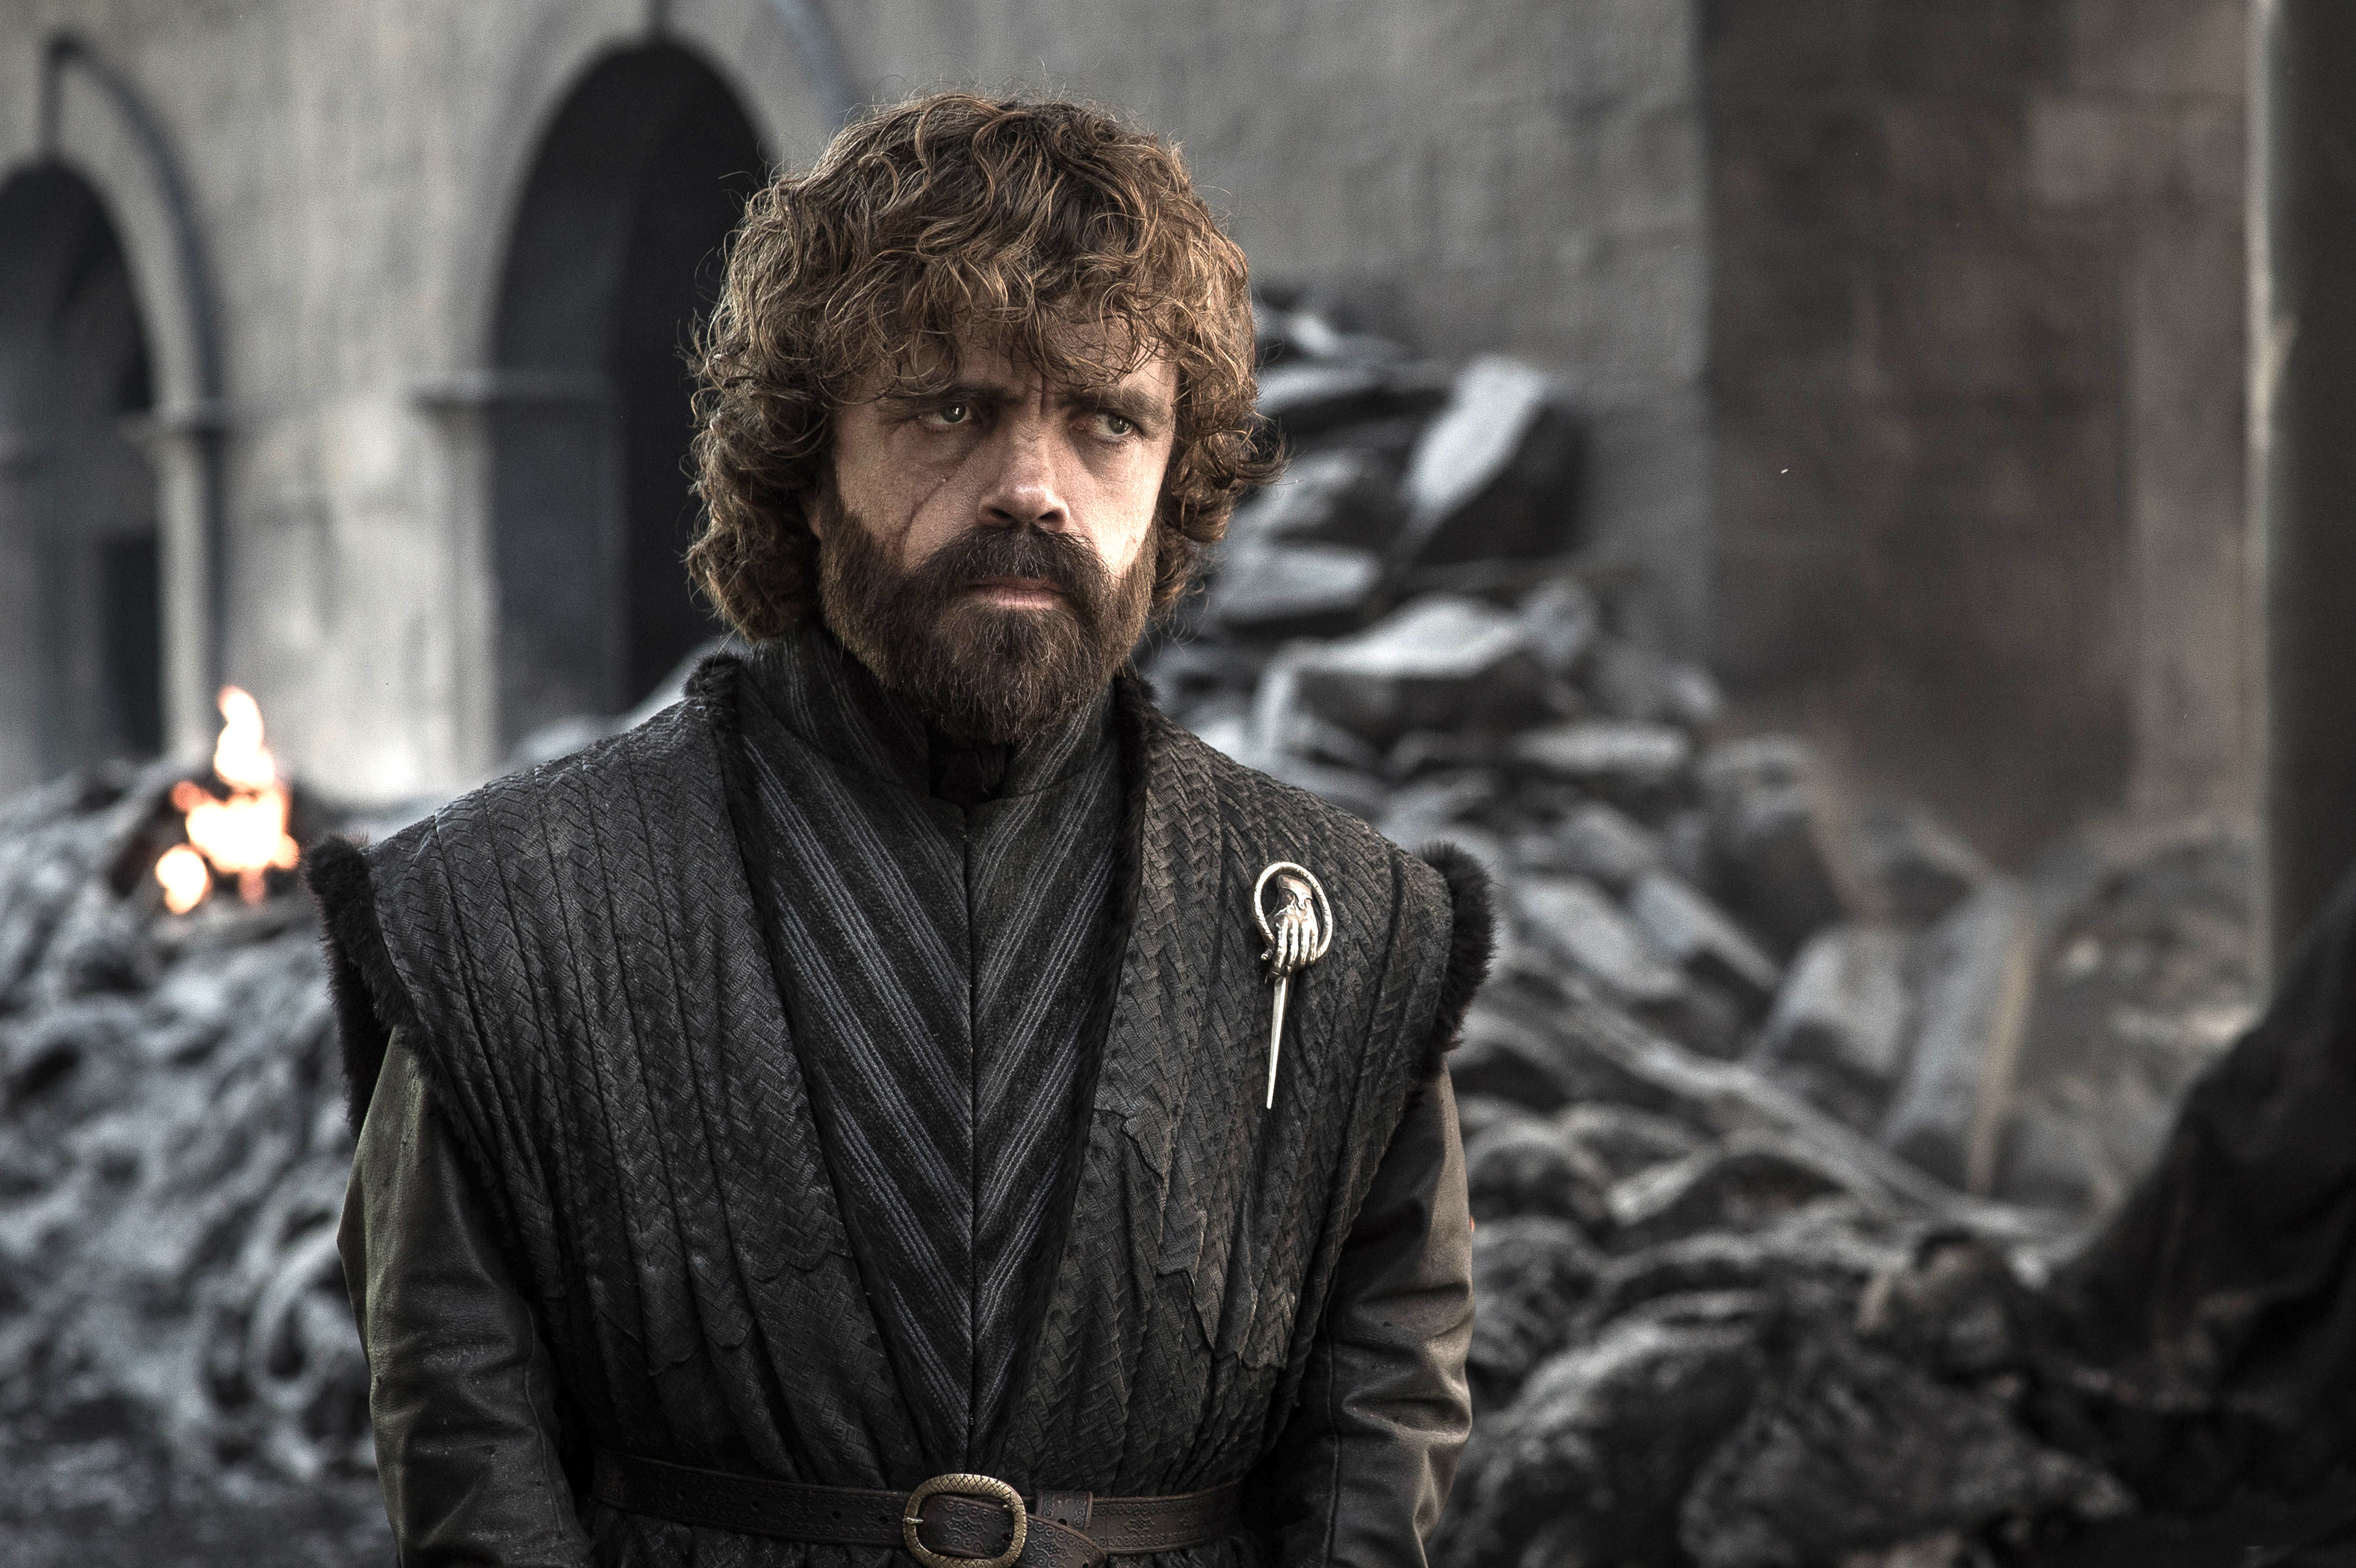 Game of Thrones season 8 episode 6 Tyrion Lannister